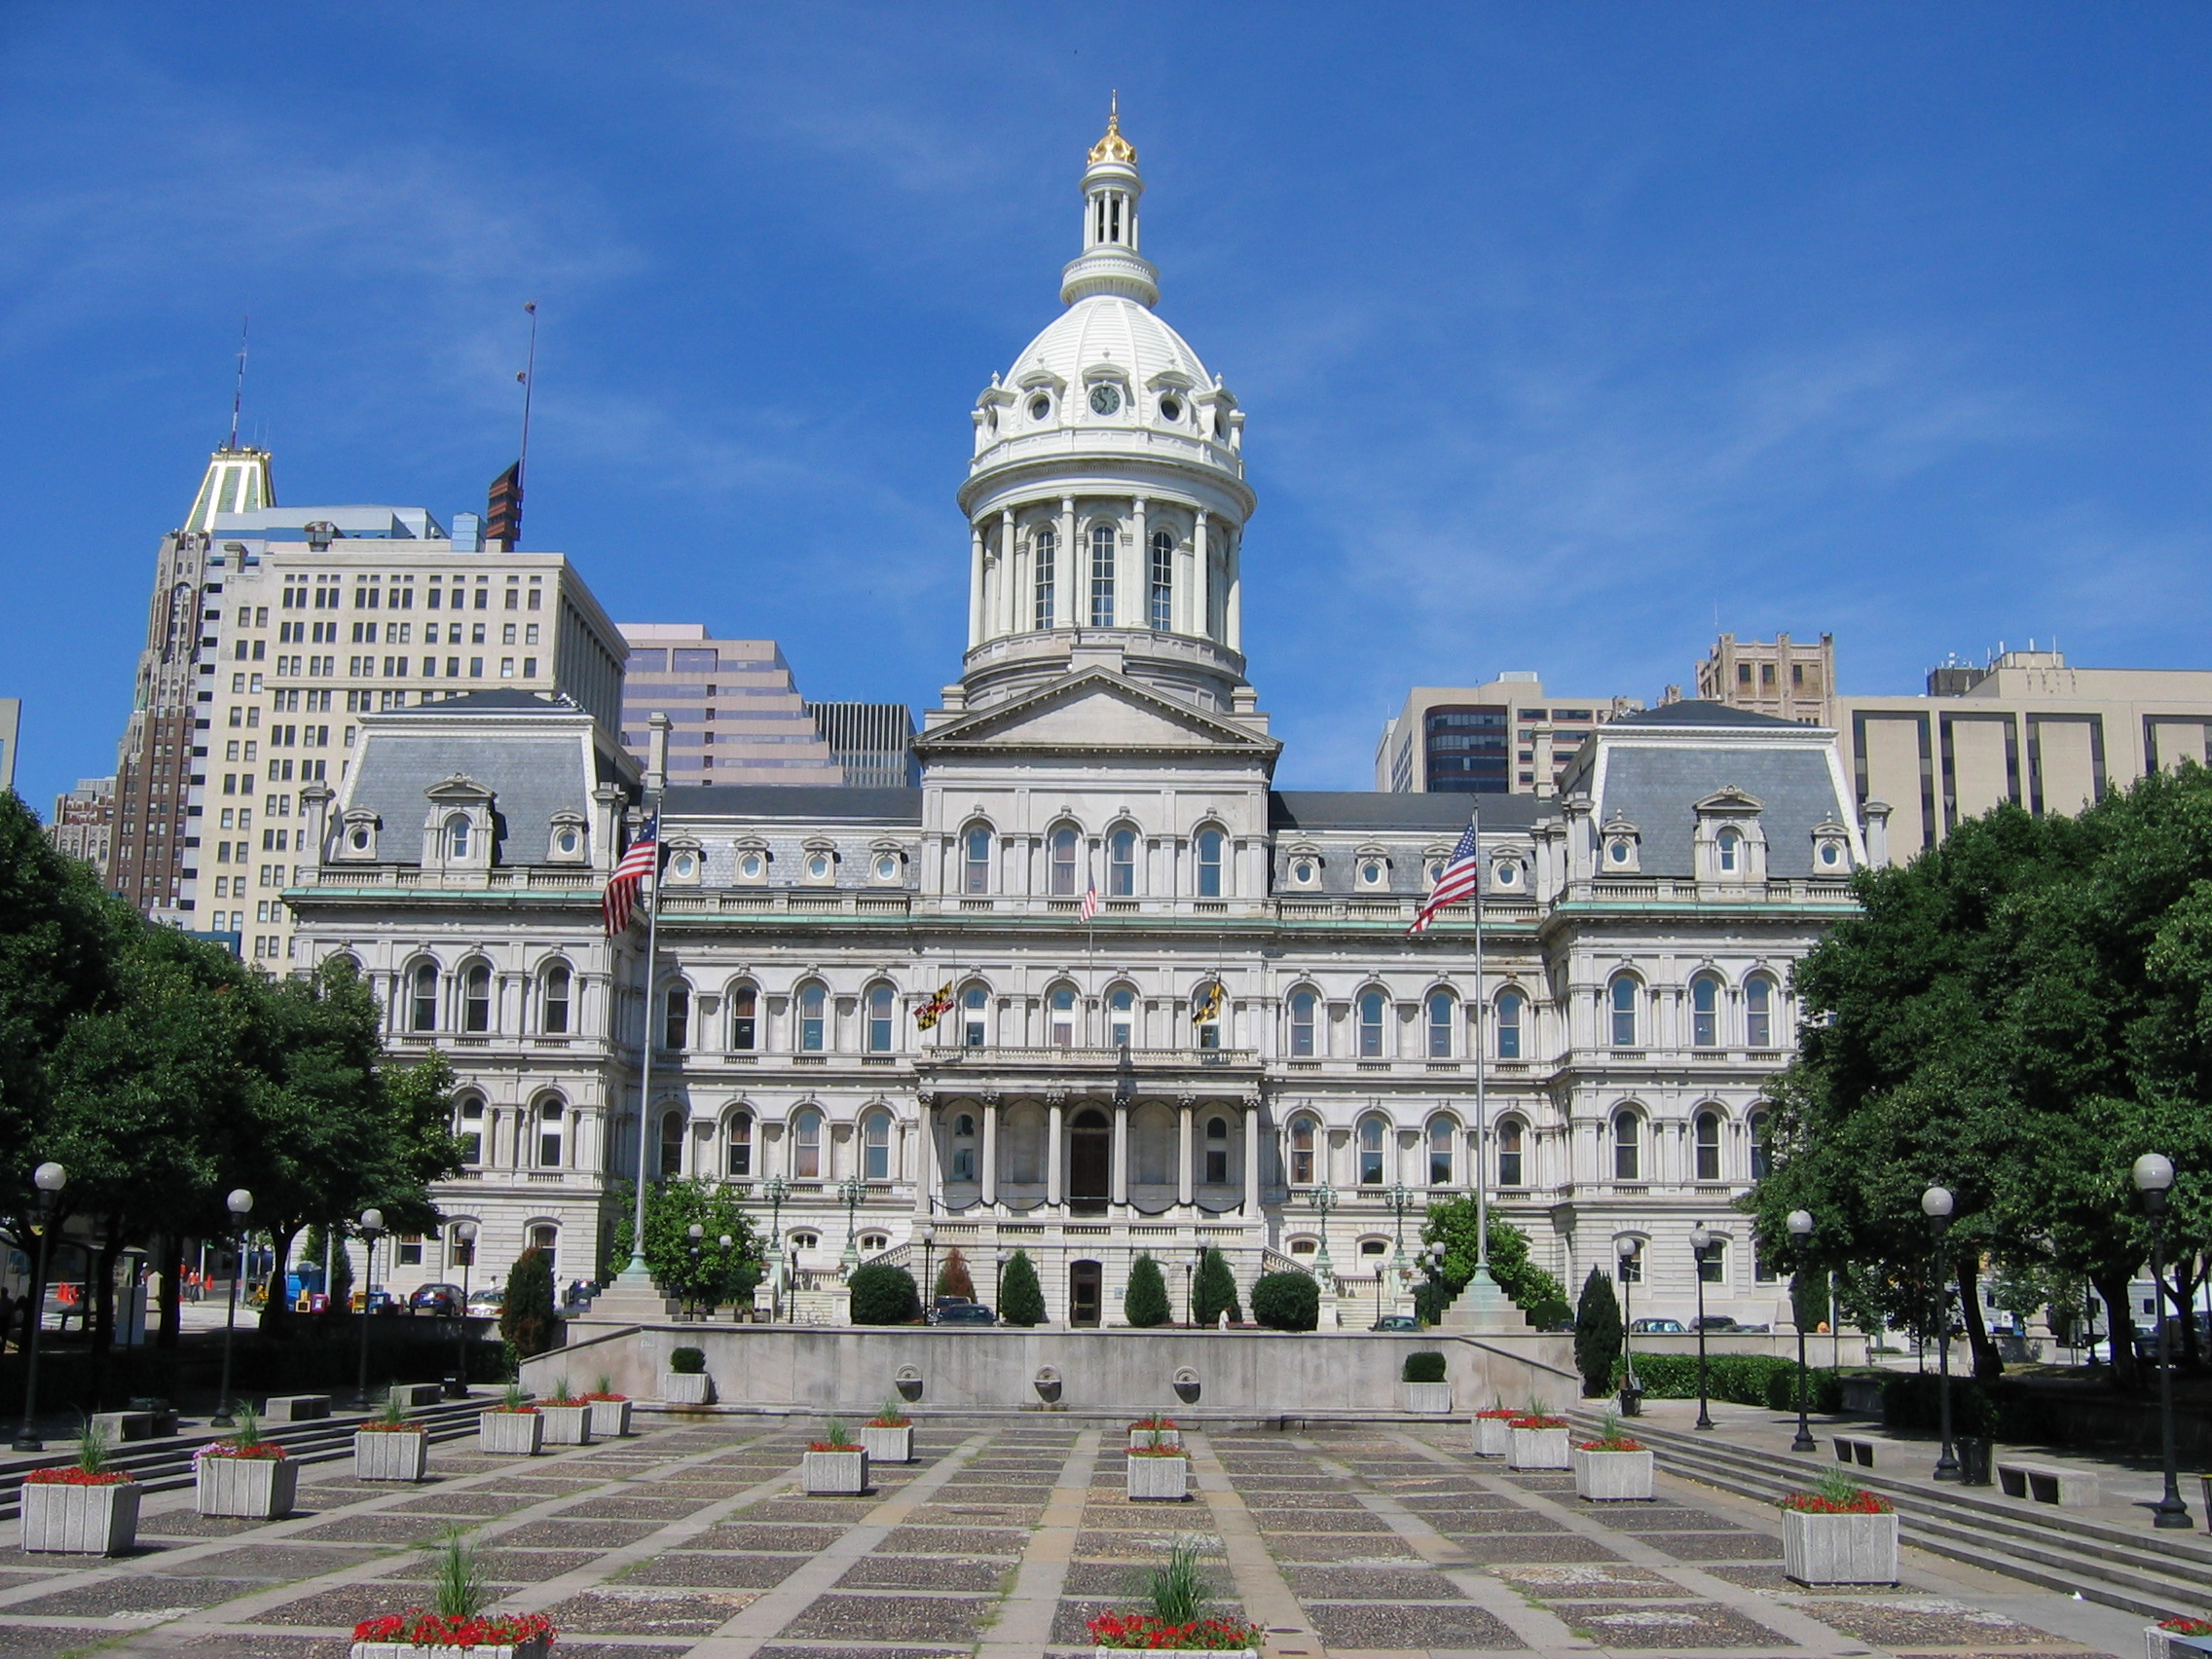 Engineer's Guide to Baltimore: City Hall